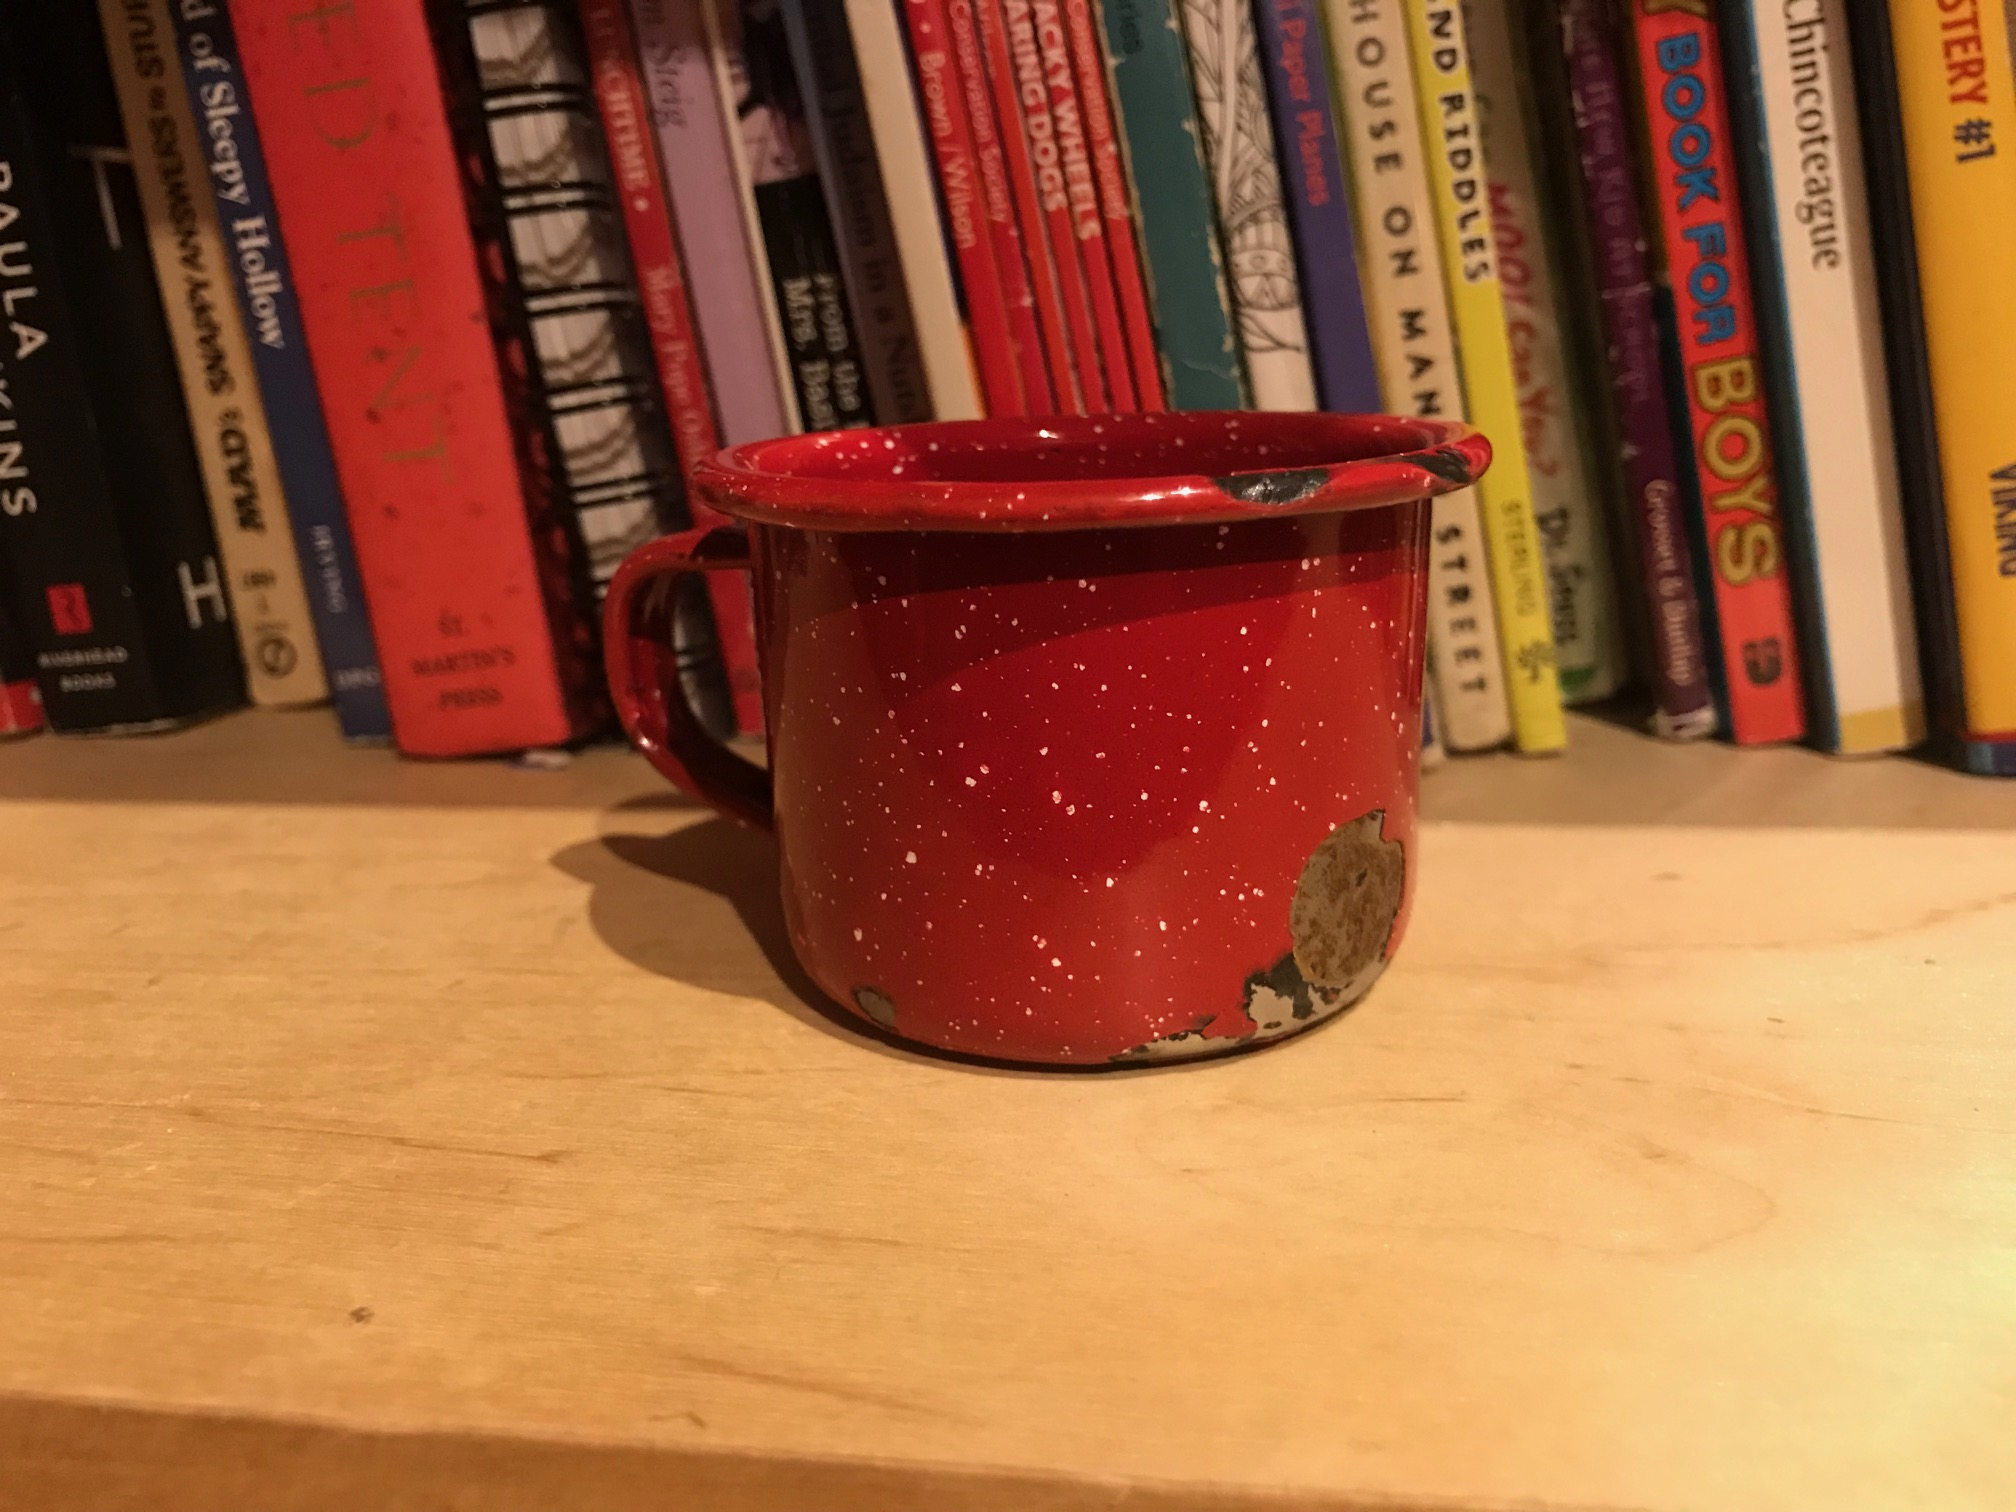 Small Red Enamelware Camping Cup / Espresso Cup: 8,851 ppm Cadmium [40 ppm Cadmium is illegal in Washington State.]